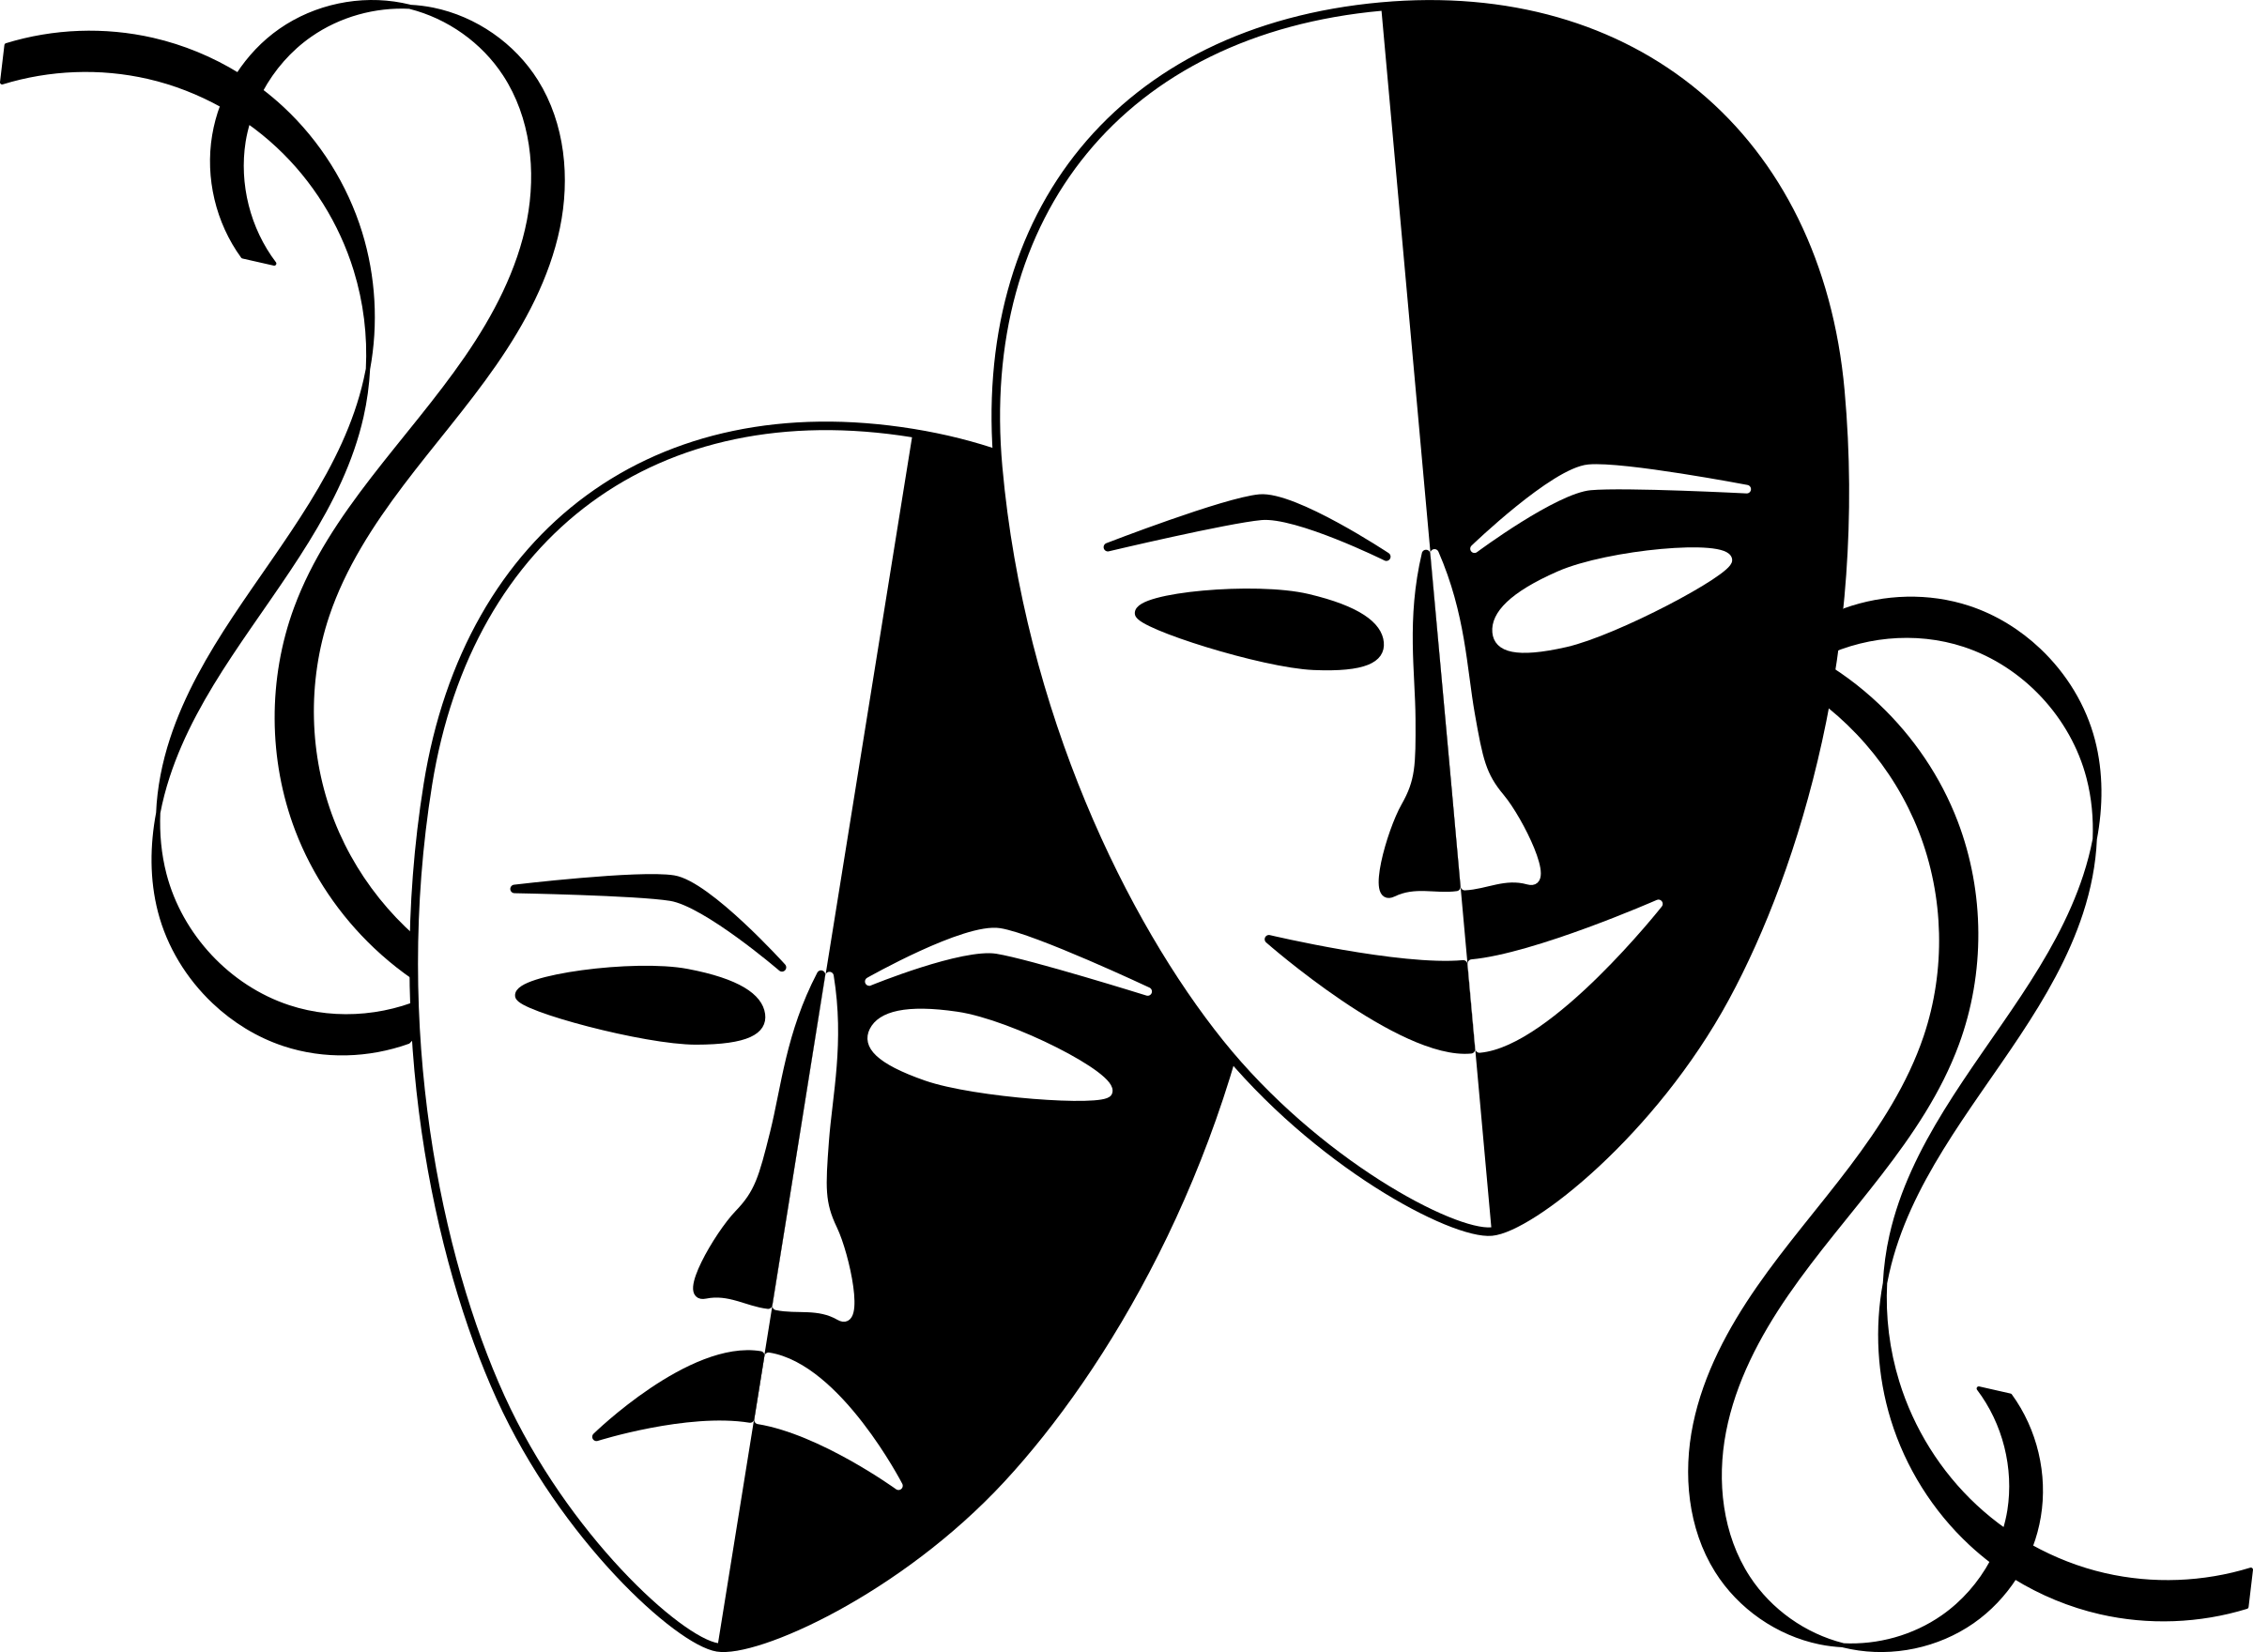 Theater mask png. Theatre masks icons free